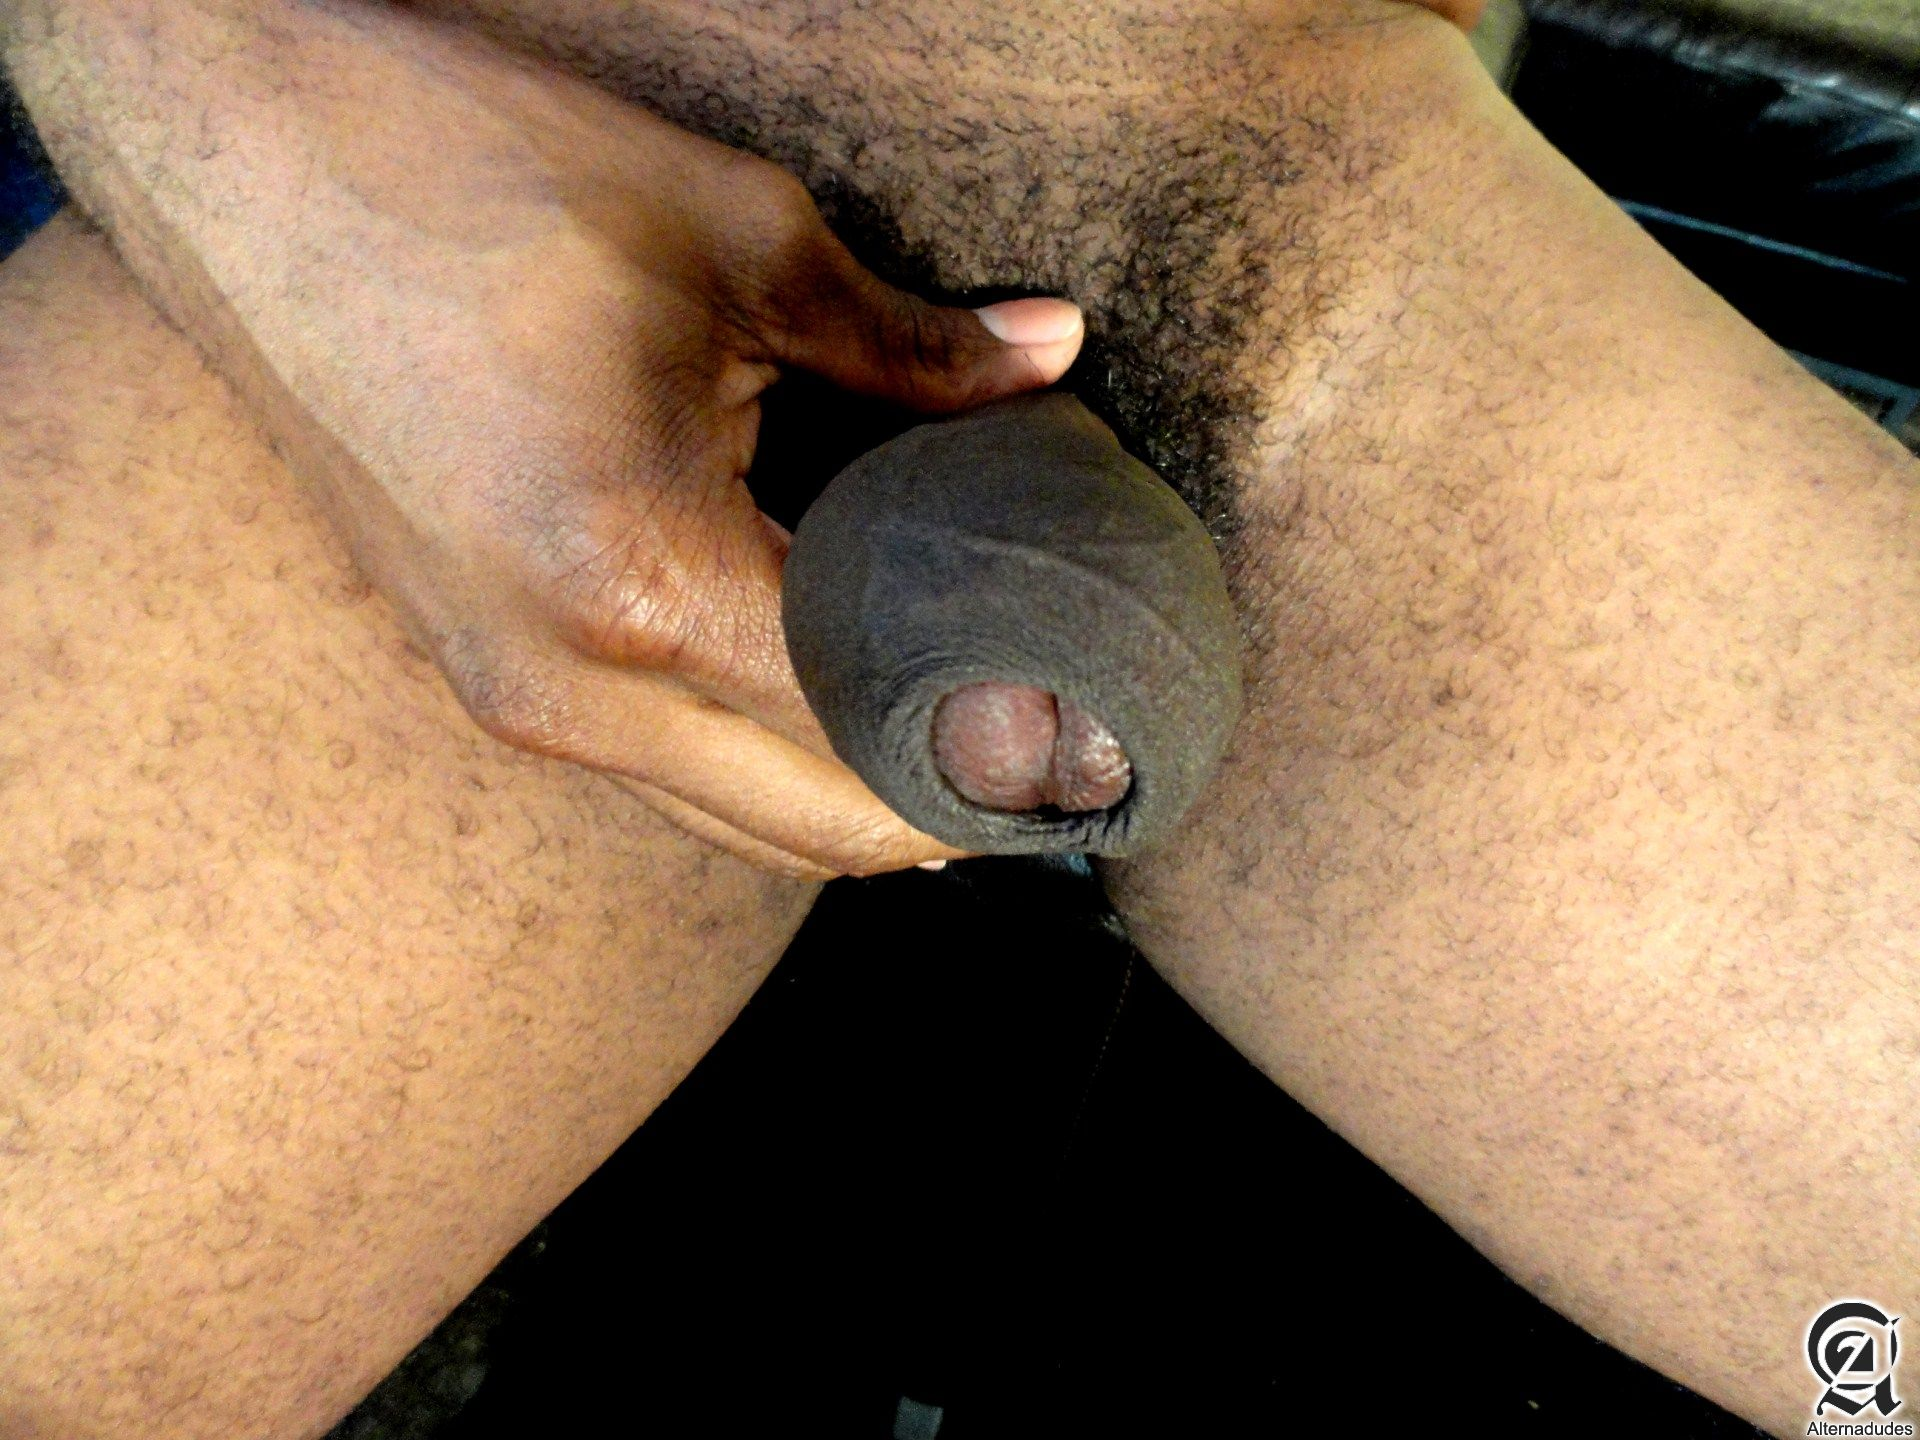 Big uncut dick pic